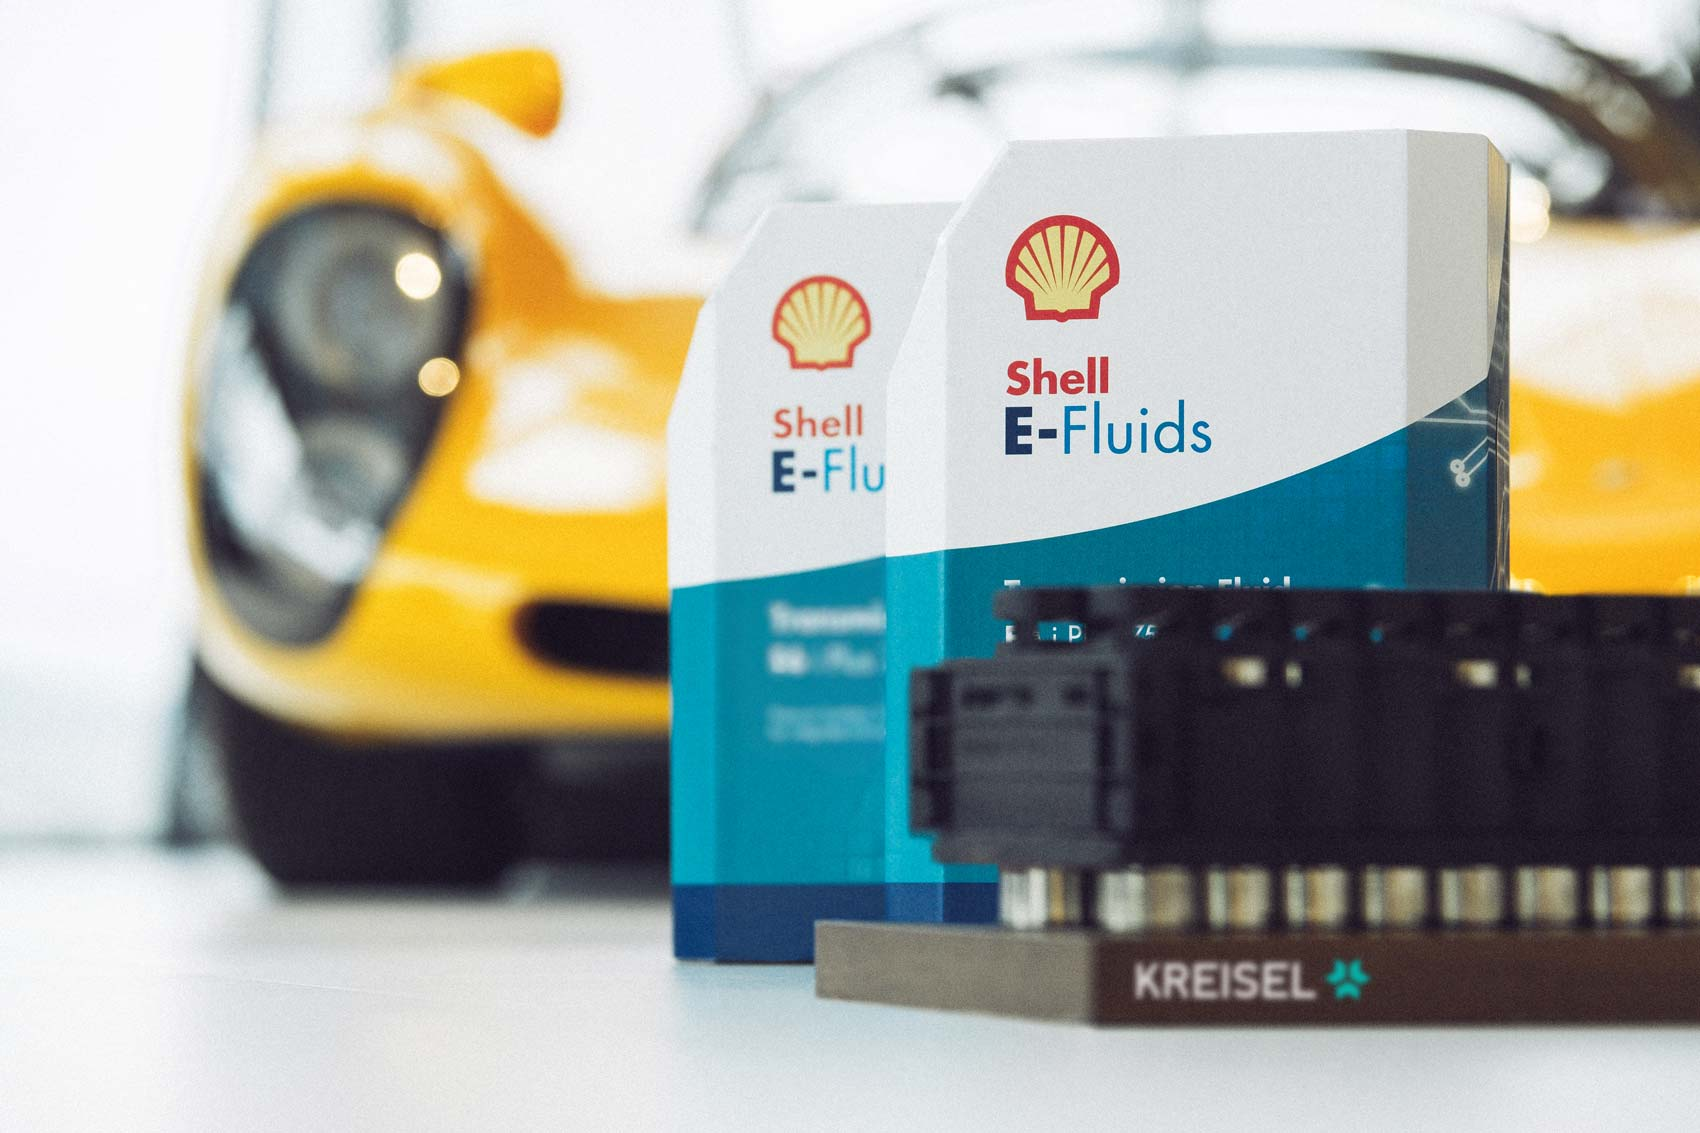 Shell and Kreisel Electric form strategic alliance to offer high-performance electric battery solution